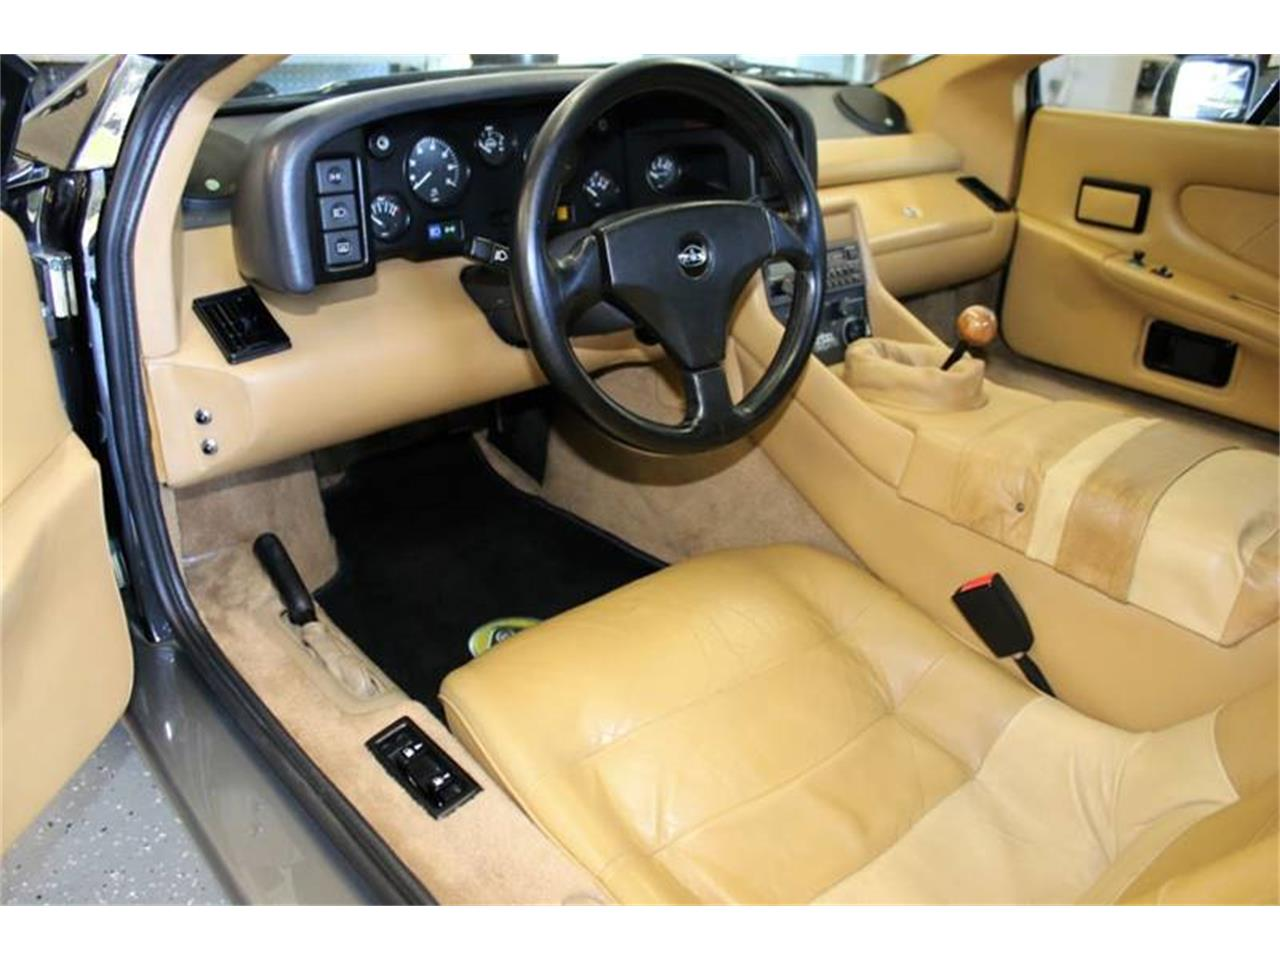 Large Picture of 1988 Esprit located in Hilton New York - $26,495.00 Offered by Great Lakes Classic Cars - QE3Z